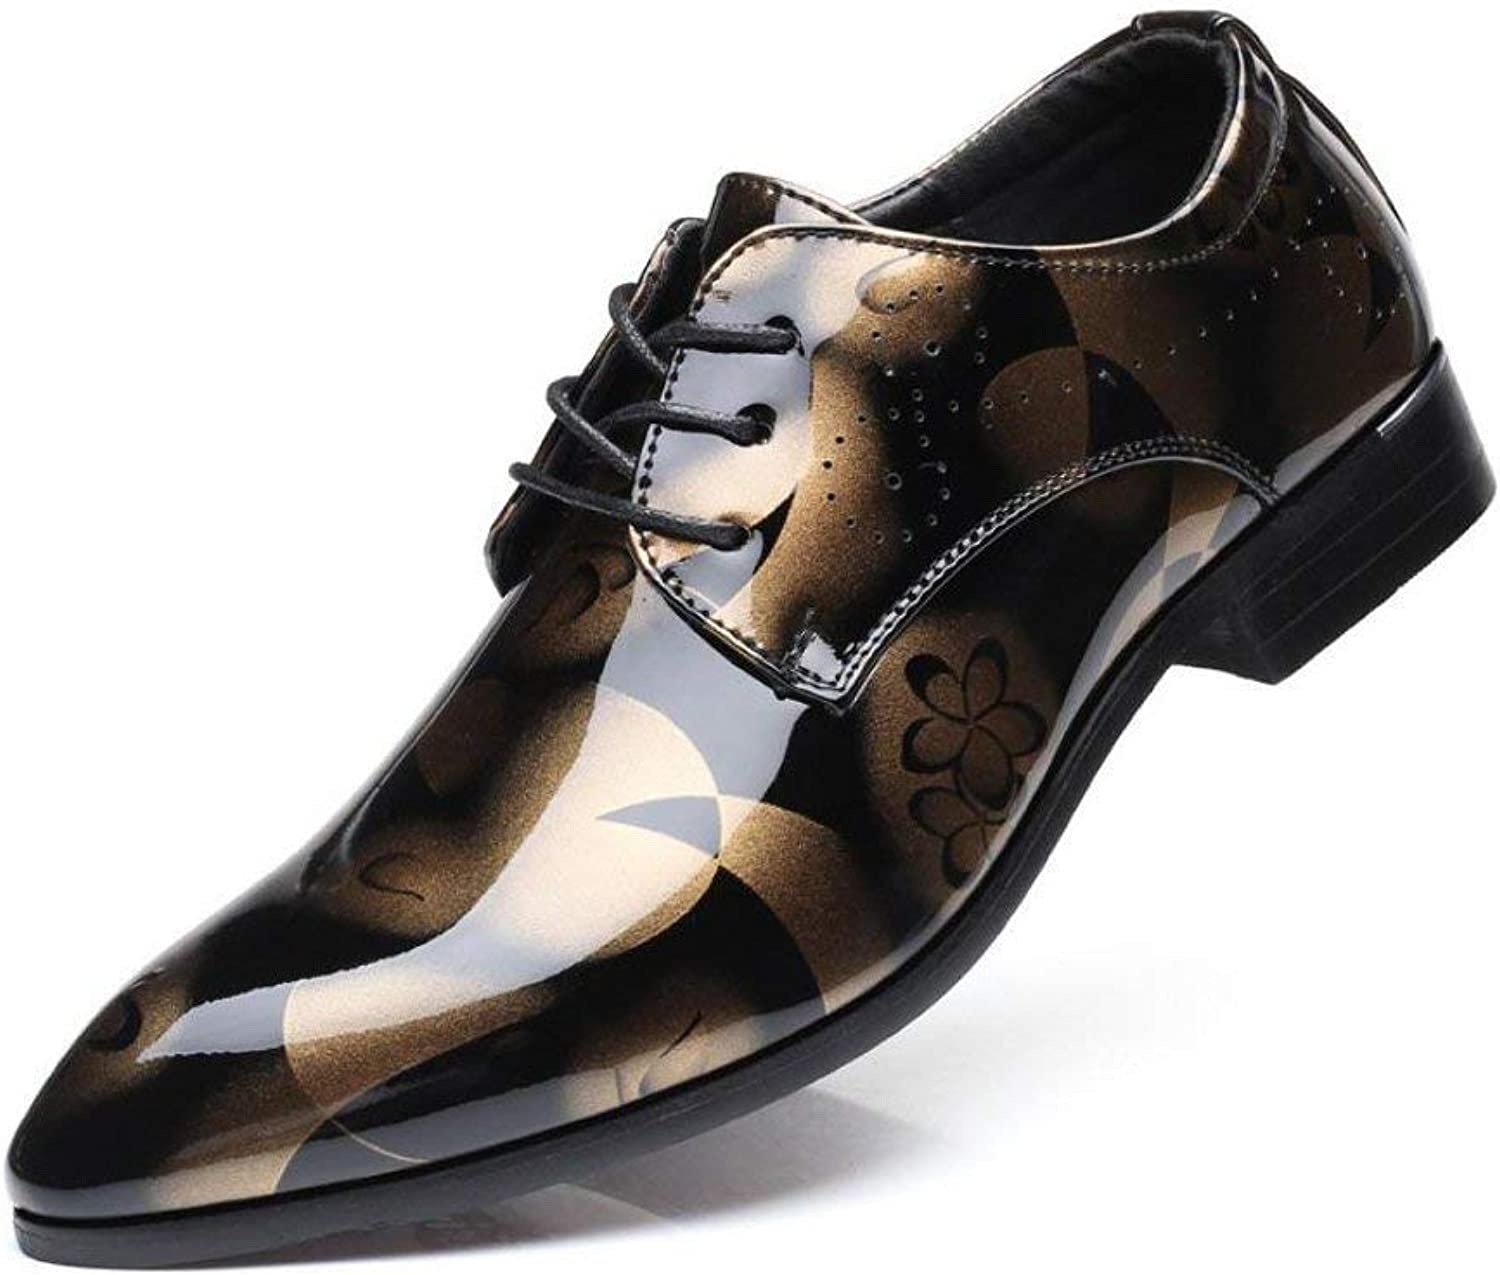 FuweiEncore Men's shoes, Leather shoes, Pointy Toe shoes, Spring Autumn Comfort Formal shoes Party & Evening Printed, C, 47 (color   As shown, Size   One size)